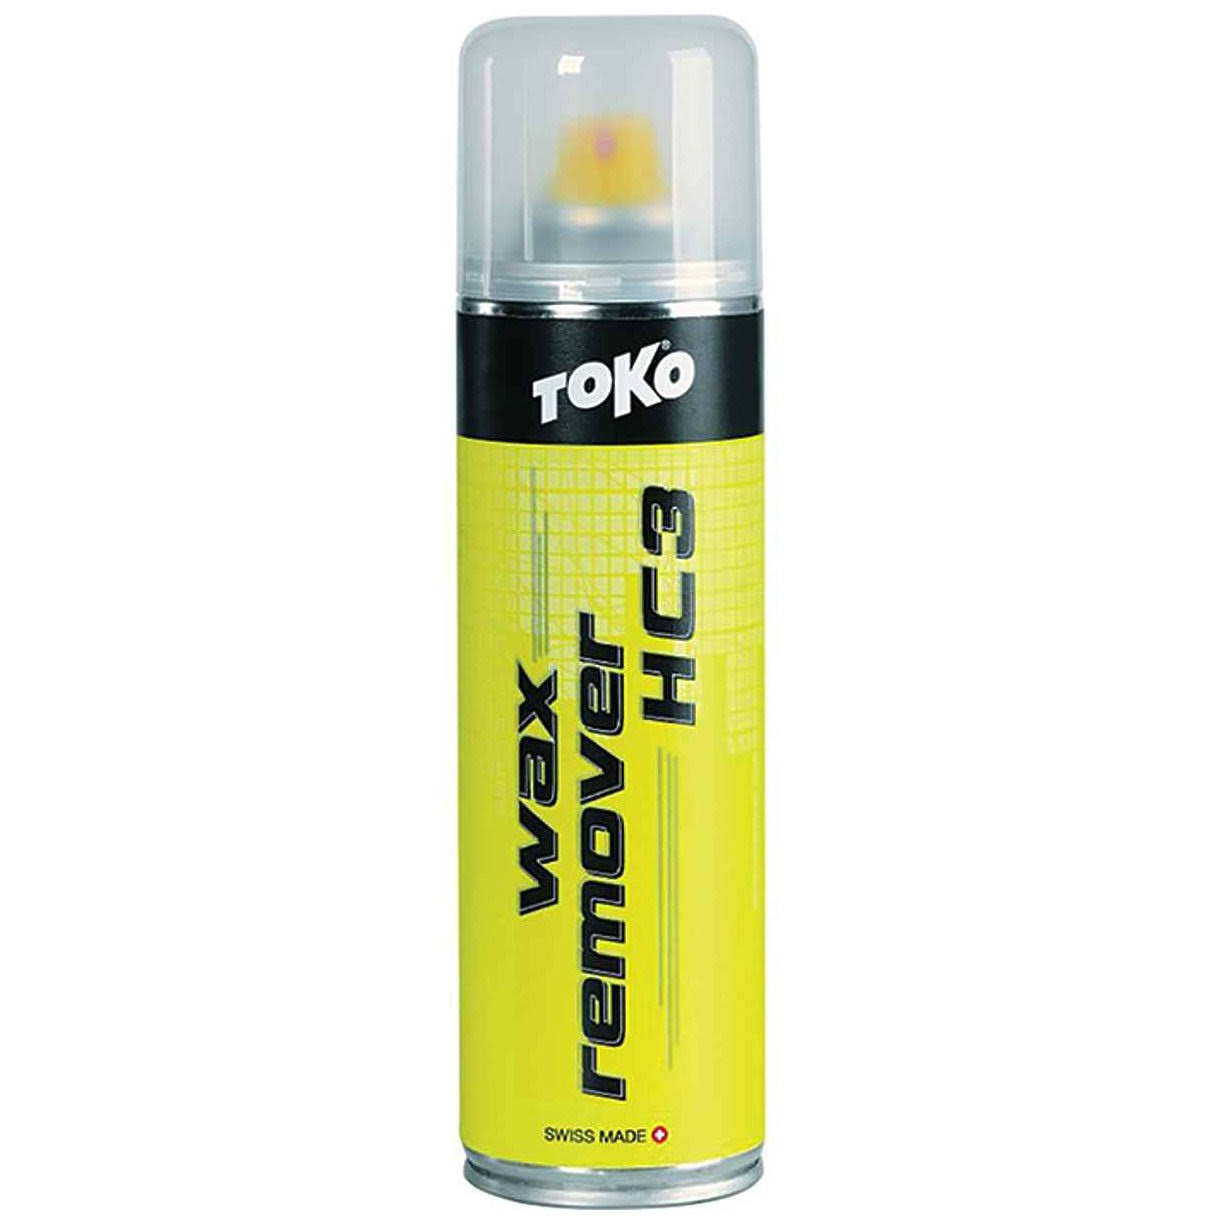 ToKo Spray Wax Remover - 250ml